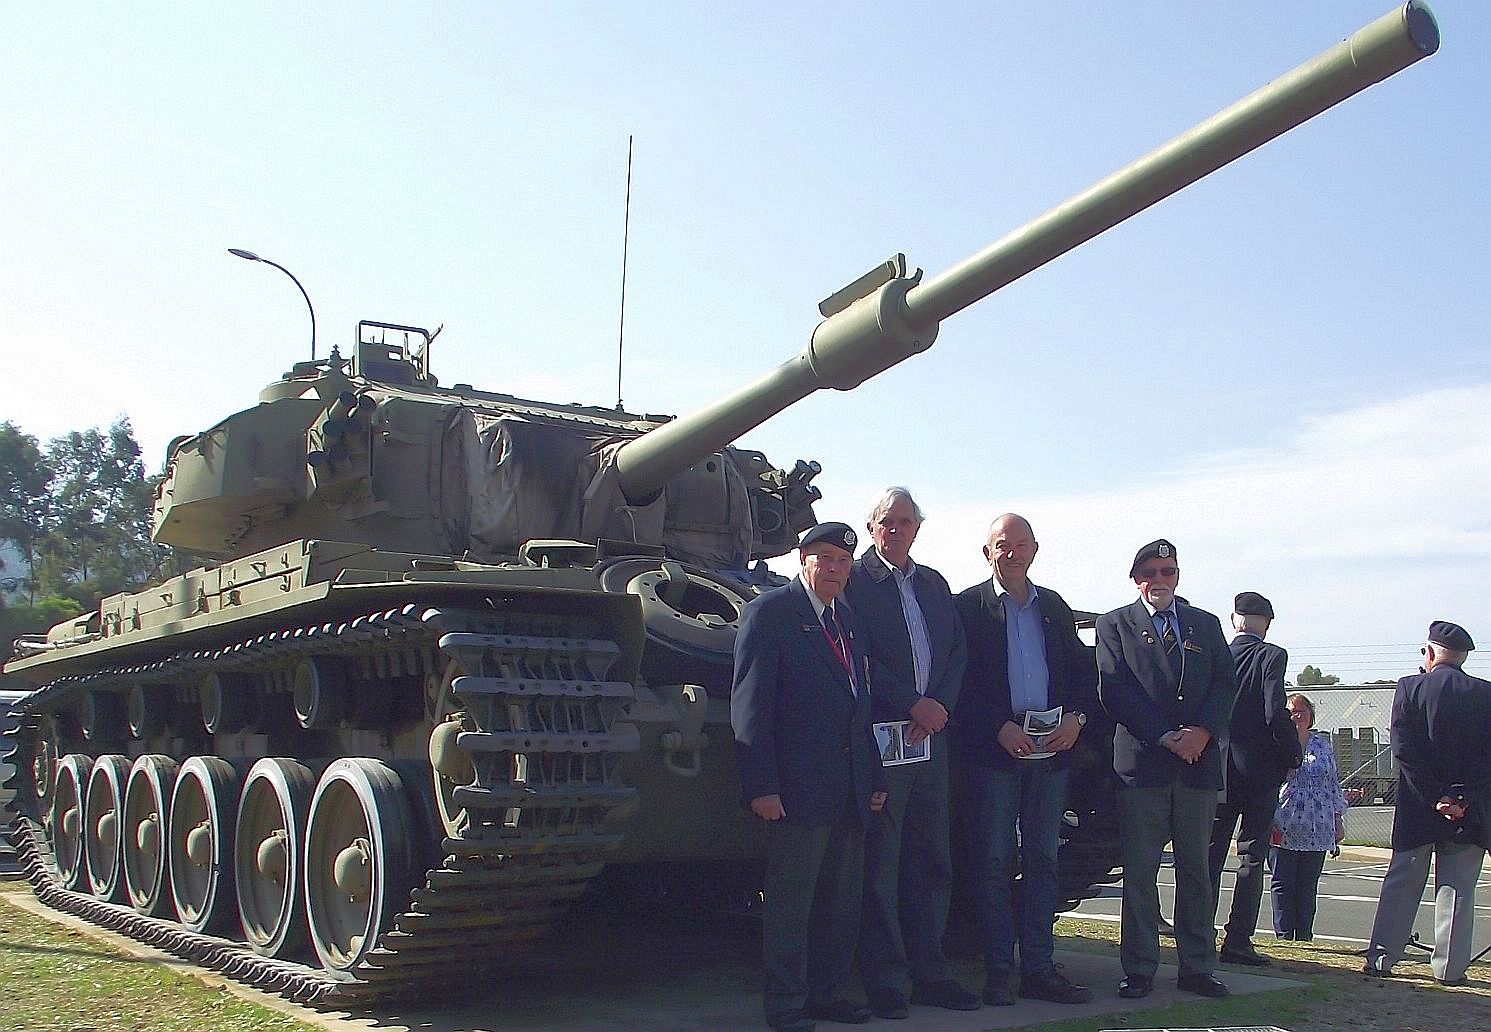 Members of the Association standing in front of the Memorial Tank following the Service.